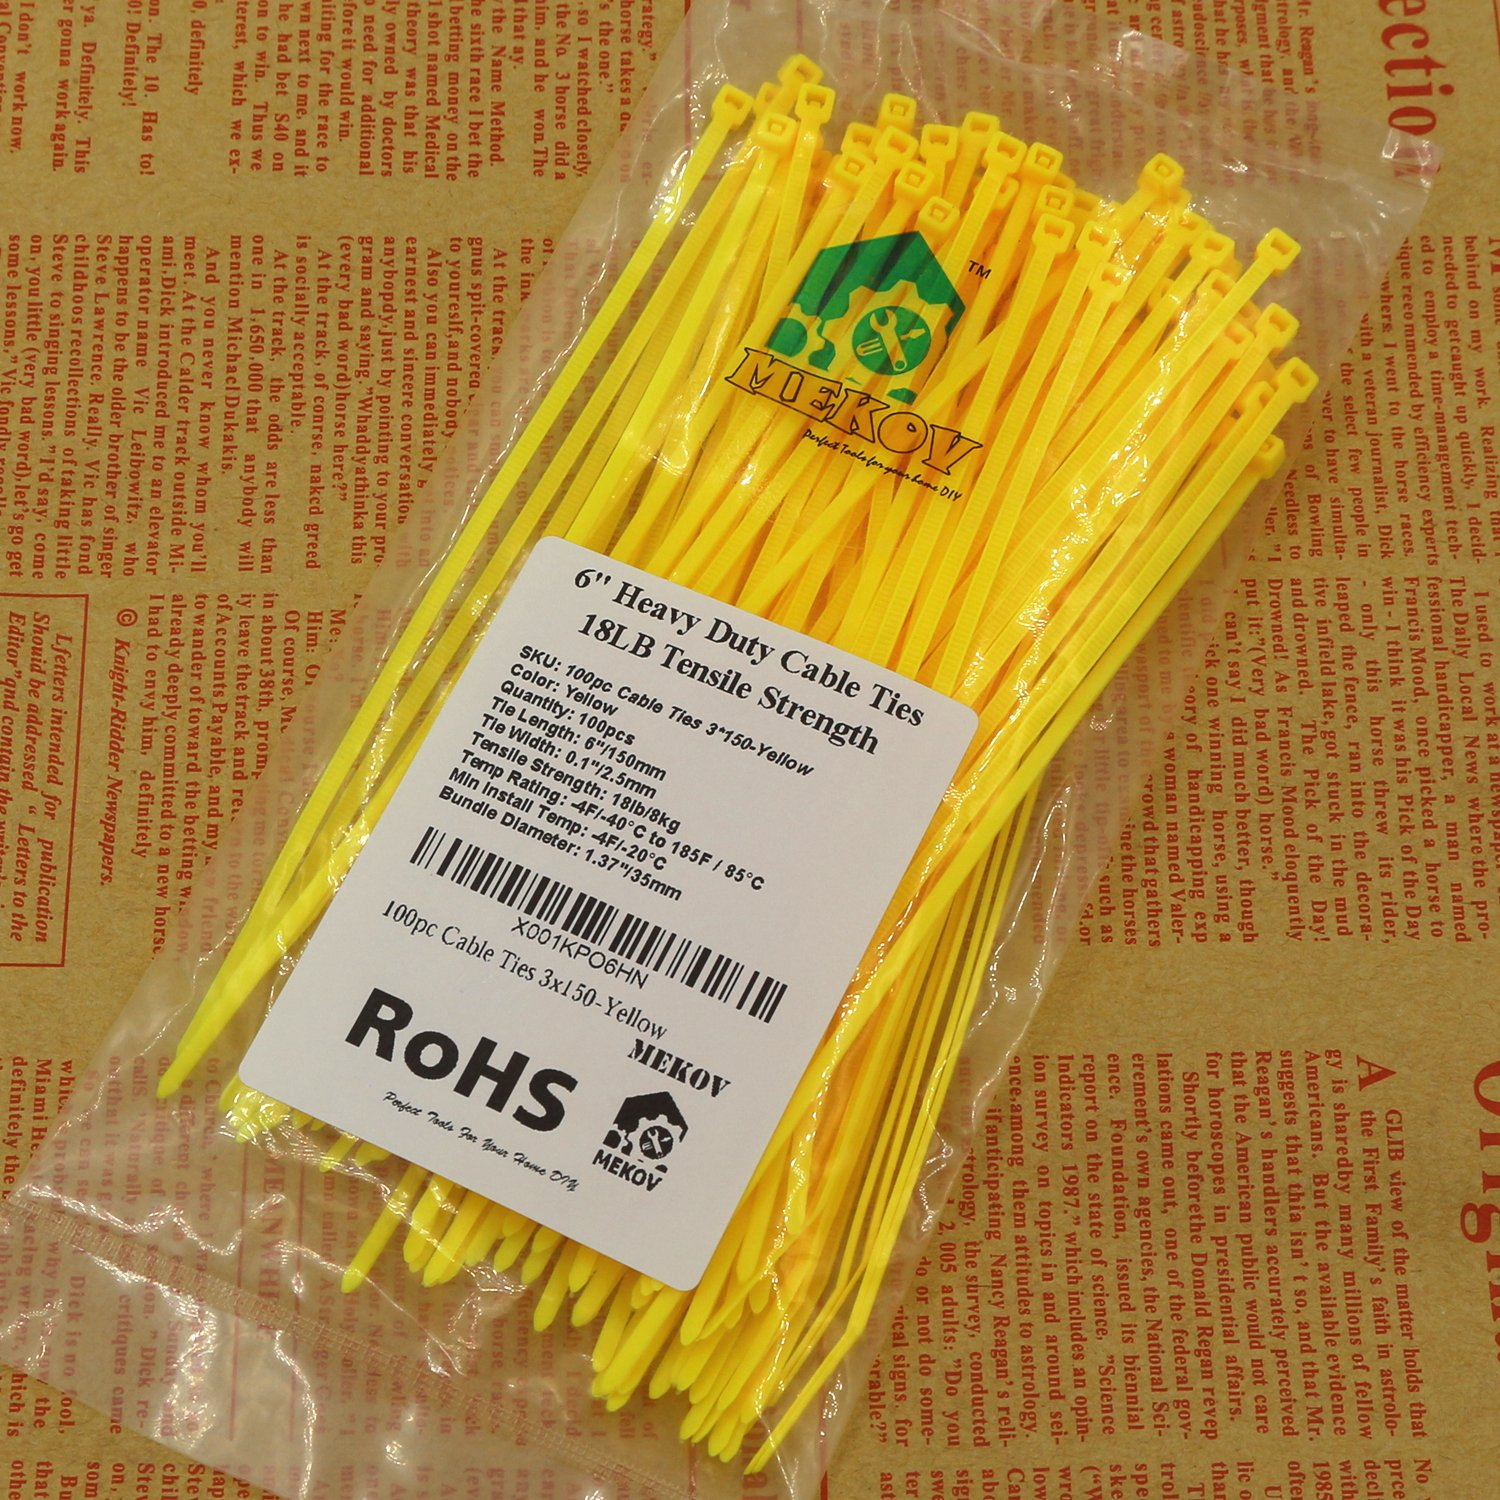 Nylon Cable Ties, Mekov, 6 Inch Heavy Duty Cable Ties, 18-LB Tensile Strength, Zip Ties with 0.1 Inch Width, Durable, Indoor & Outdoor use, UV Resistant (6'', 1000 Pack, Yellow) by Mekov (Image #6)